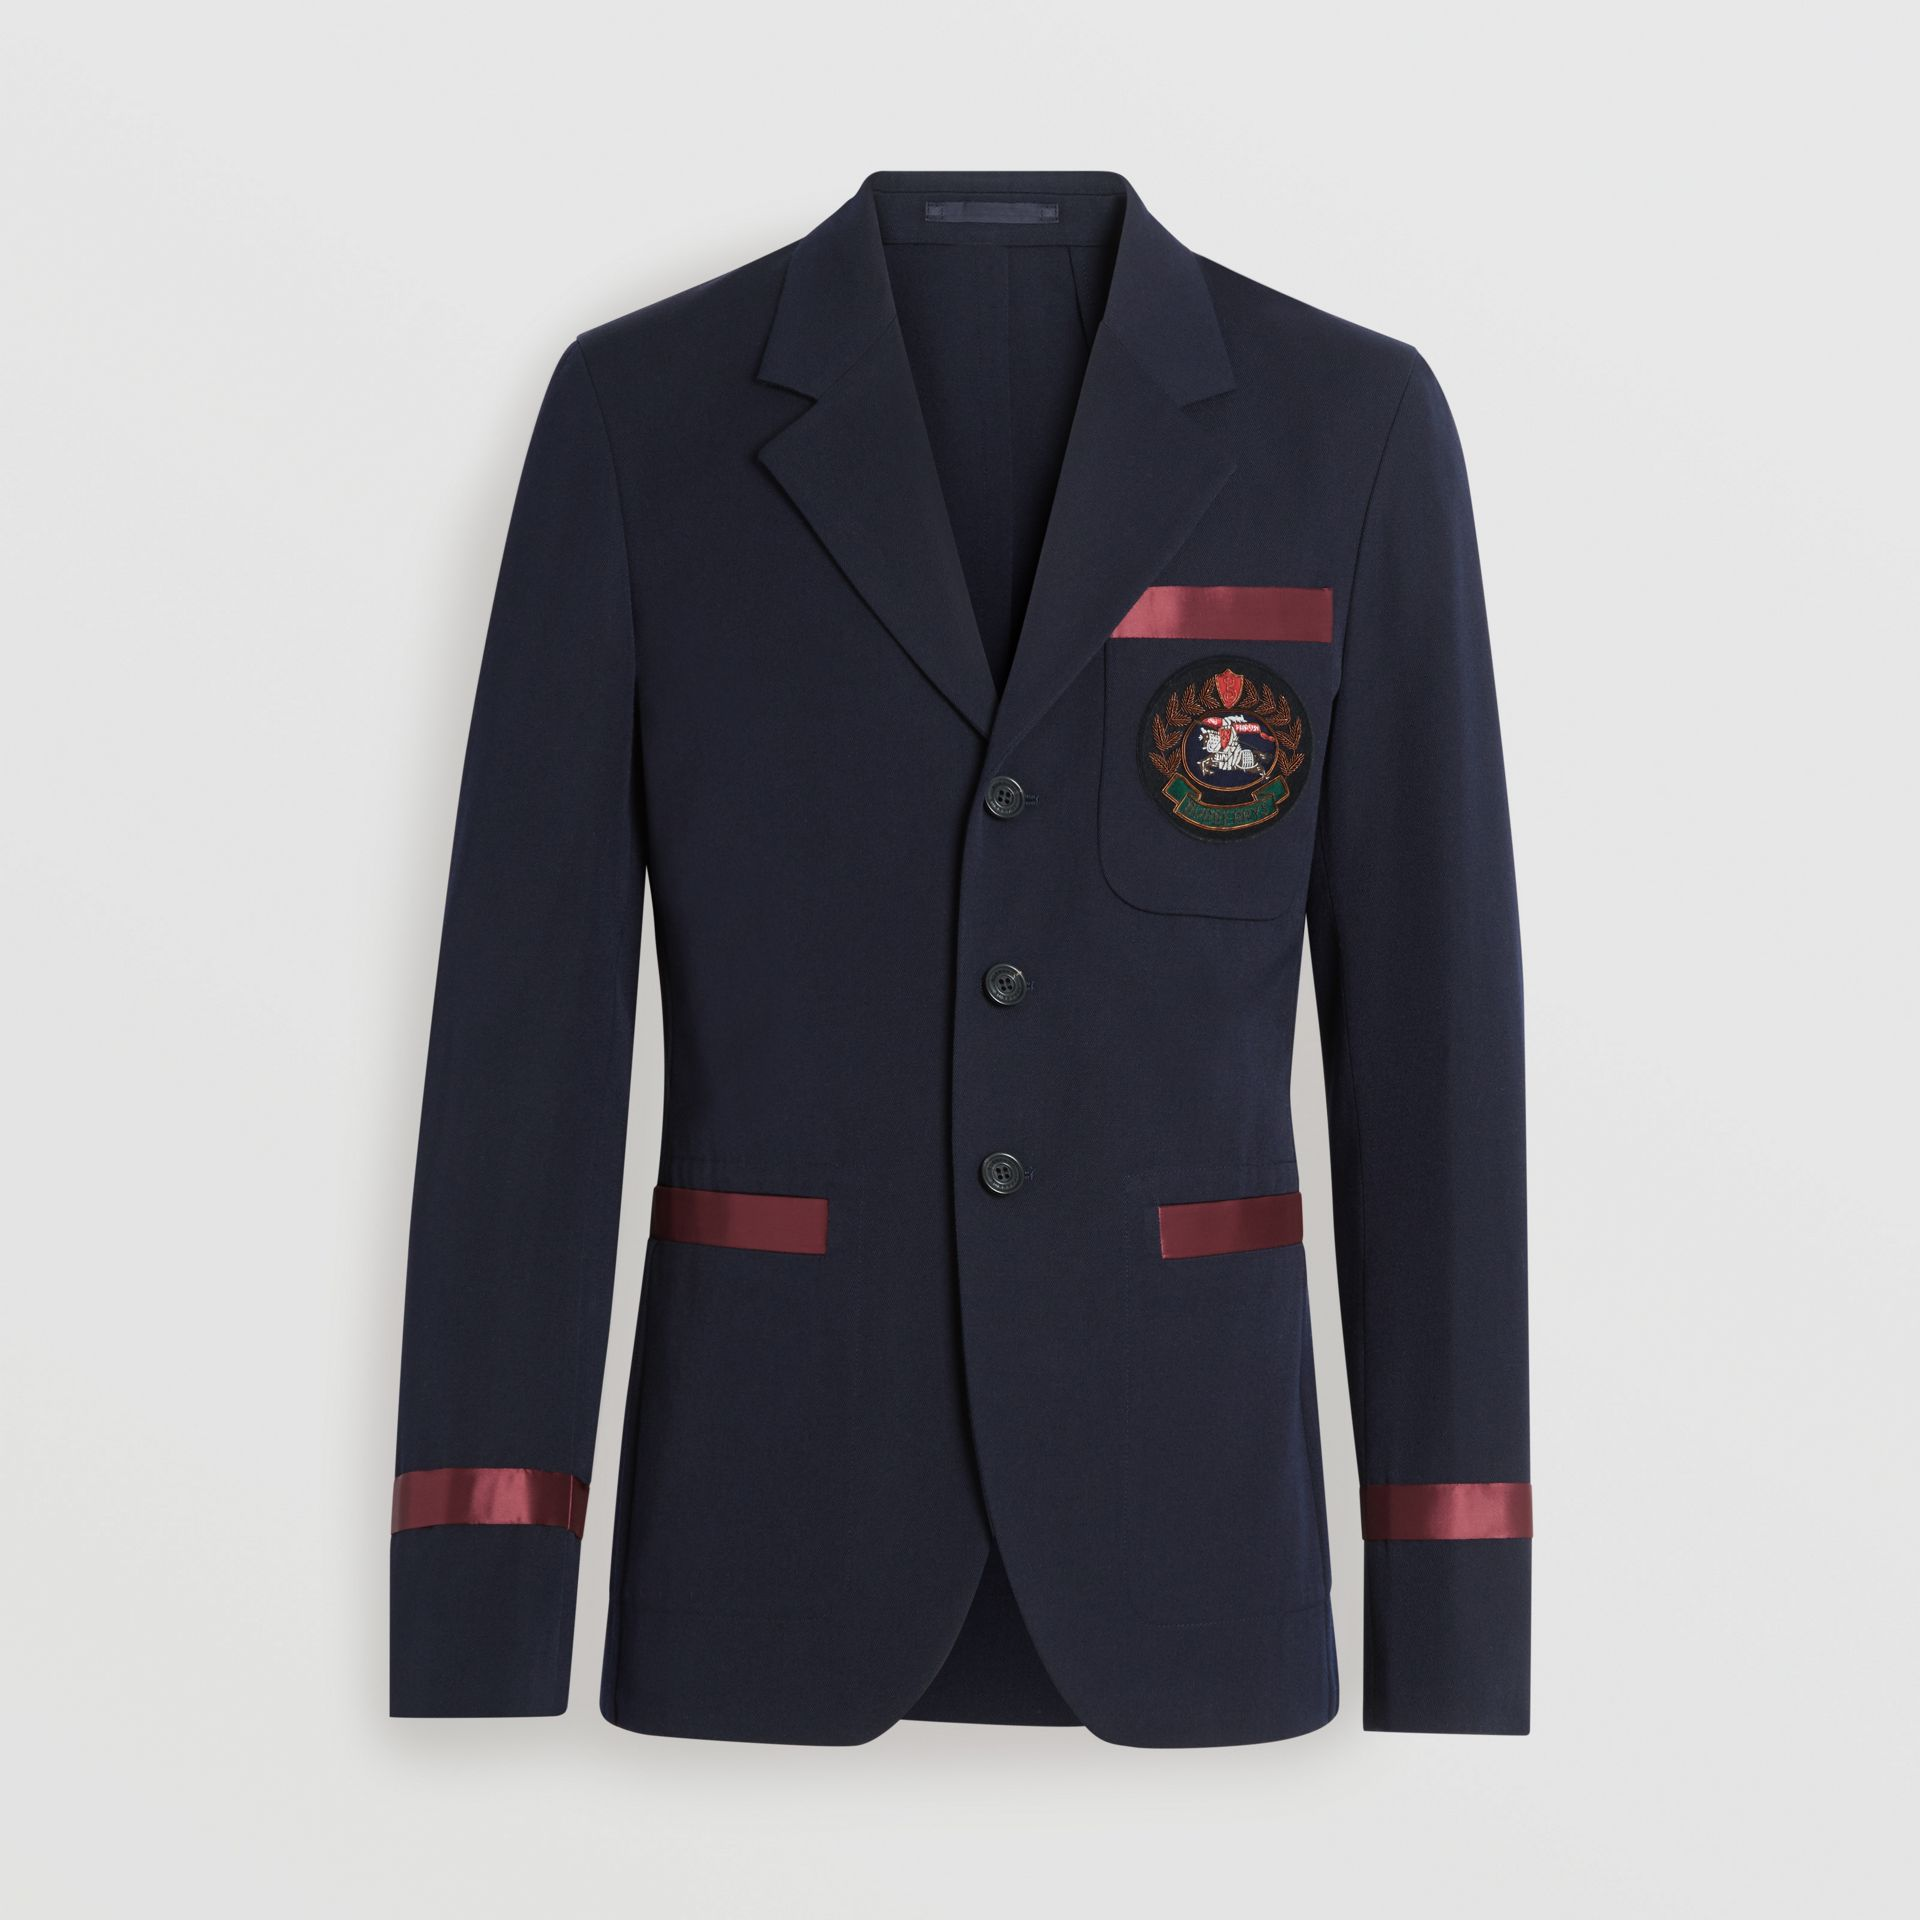 Crest Detail Wool Blend Club Blazer in Navy - Men | Burberry Australia - gallery image 3